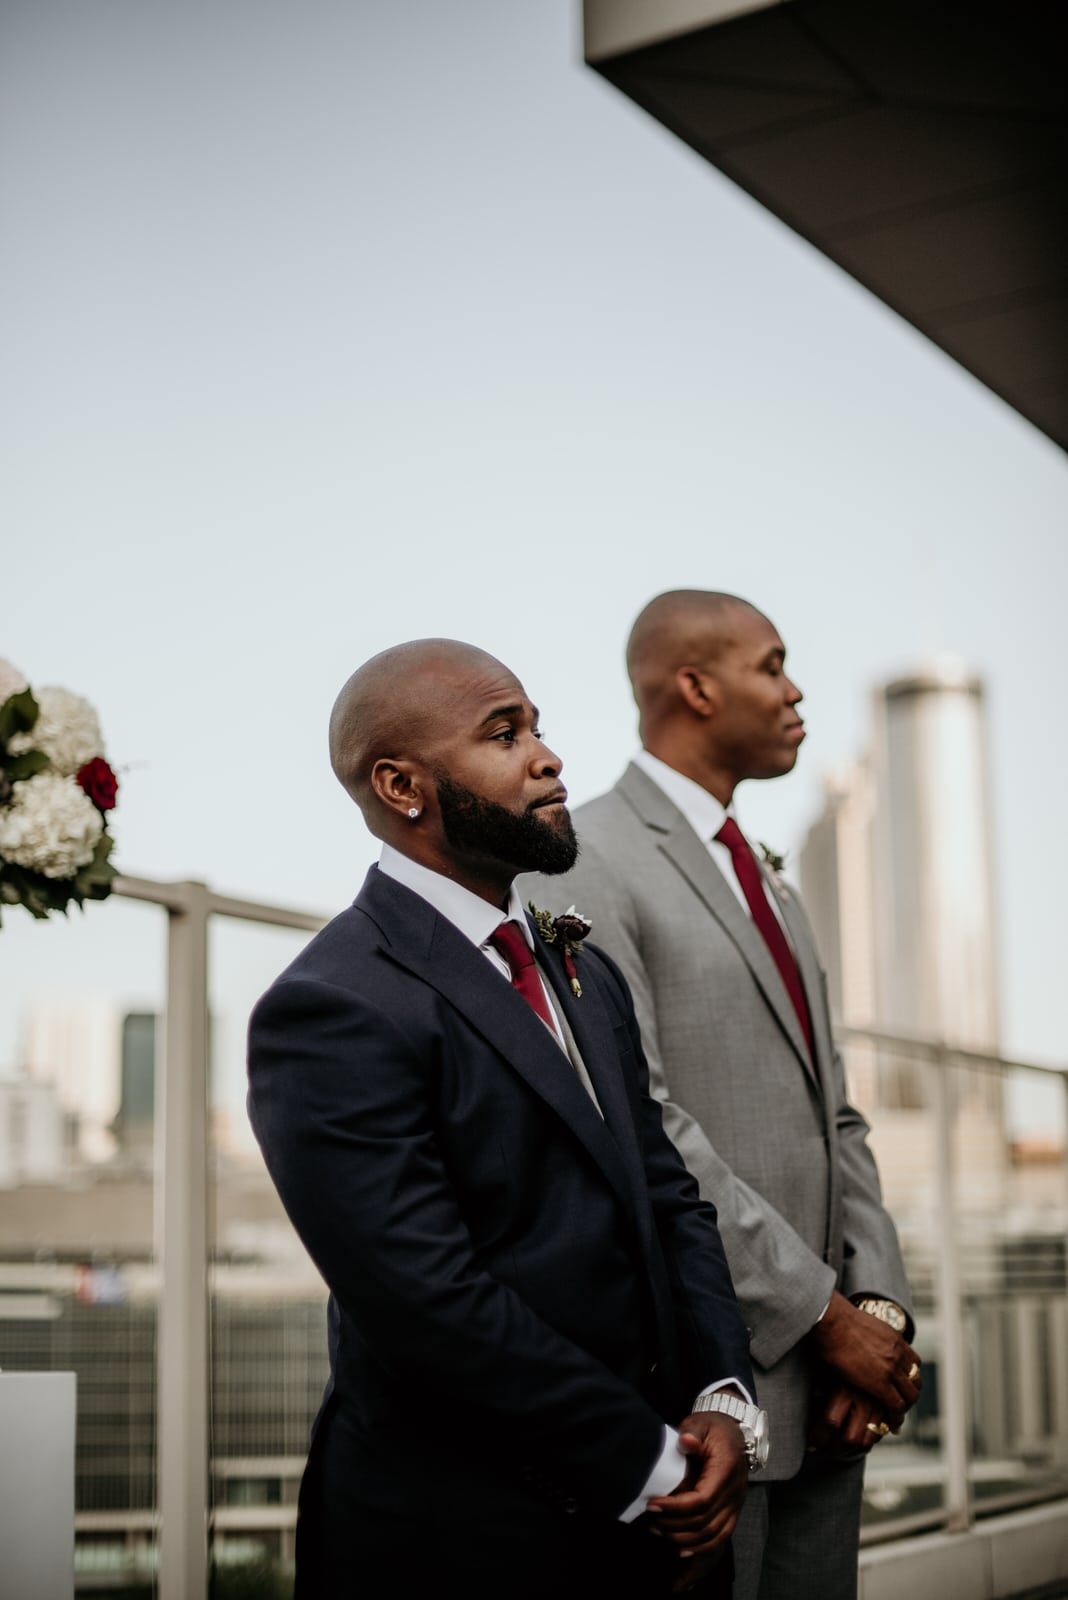 Groom awaiting his bride to come down the aisle